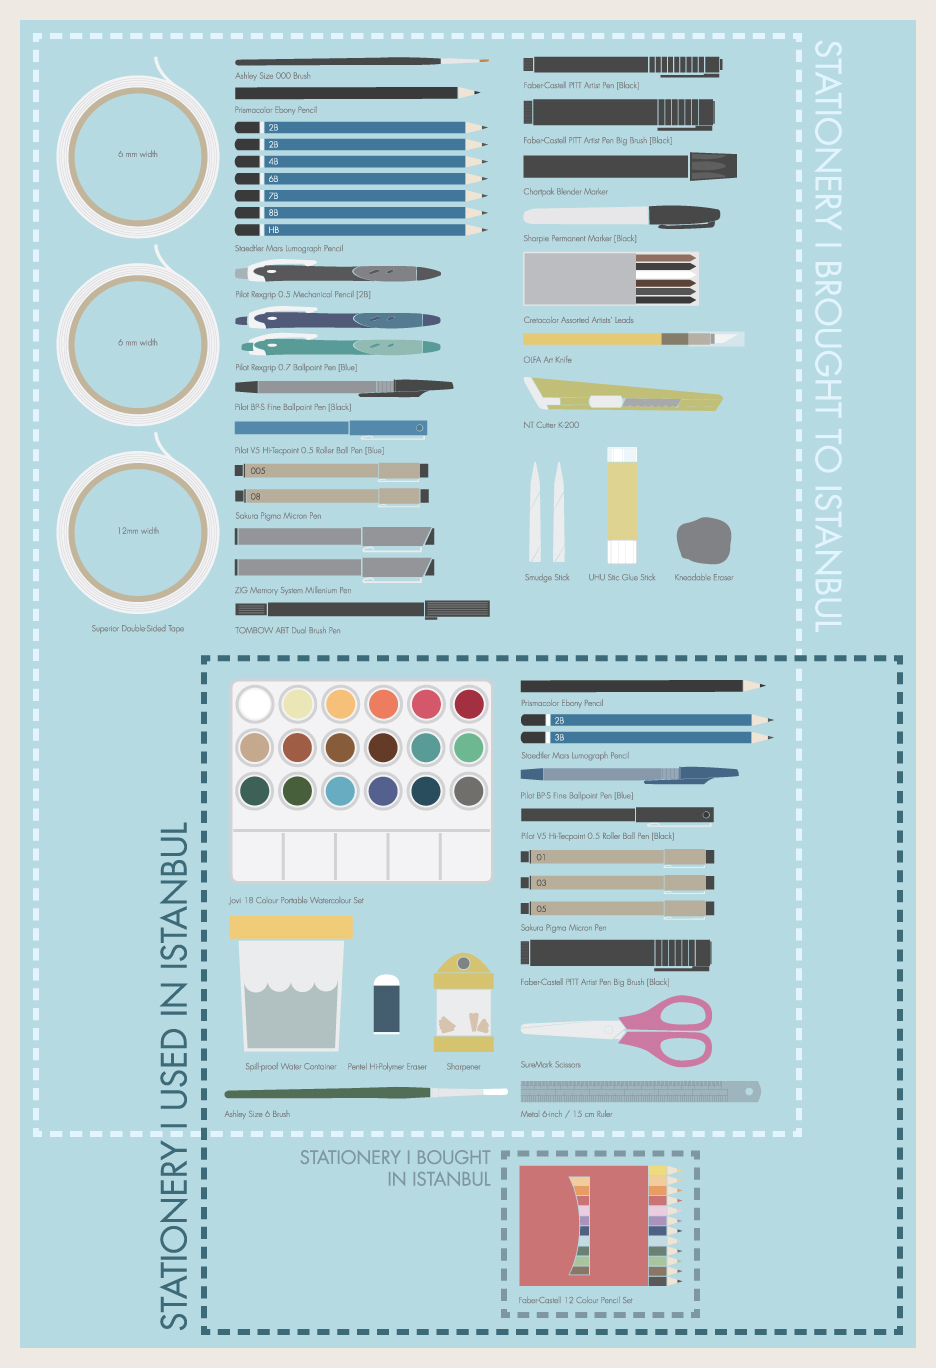 Istanbul-Infographic---Stationery.jpg